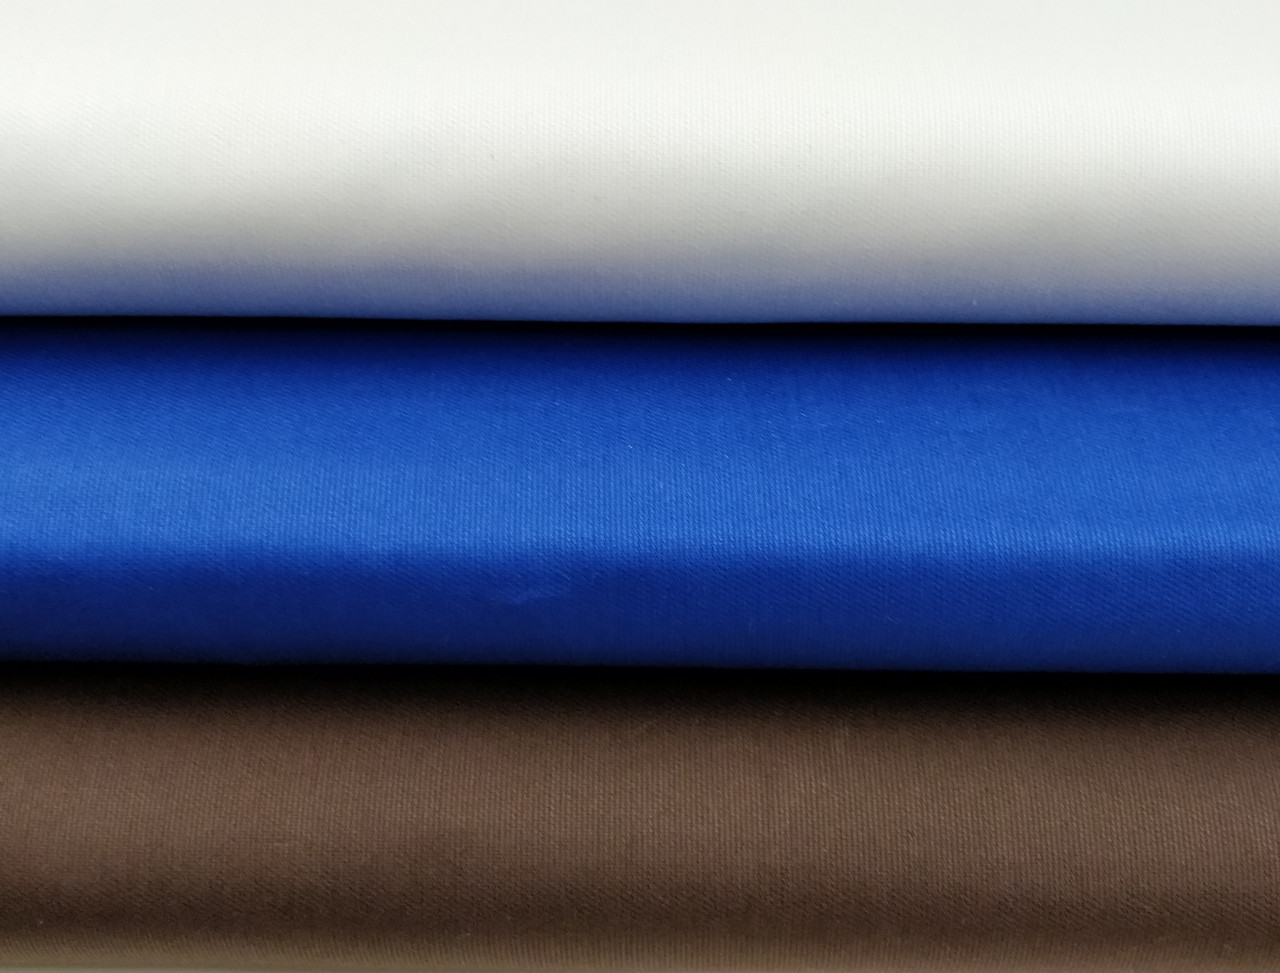 100% cotton pique in light blue, royal blue and brown, ideal for dresses, coats, boy's pants and baby bedding, 145 cm wide, wash at 30 degrees, priced per metre